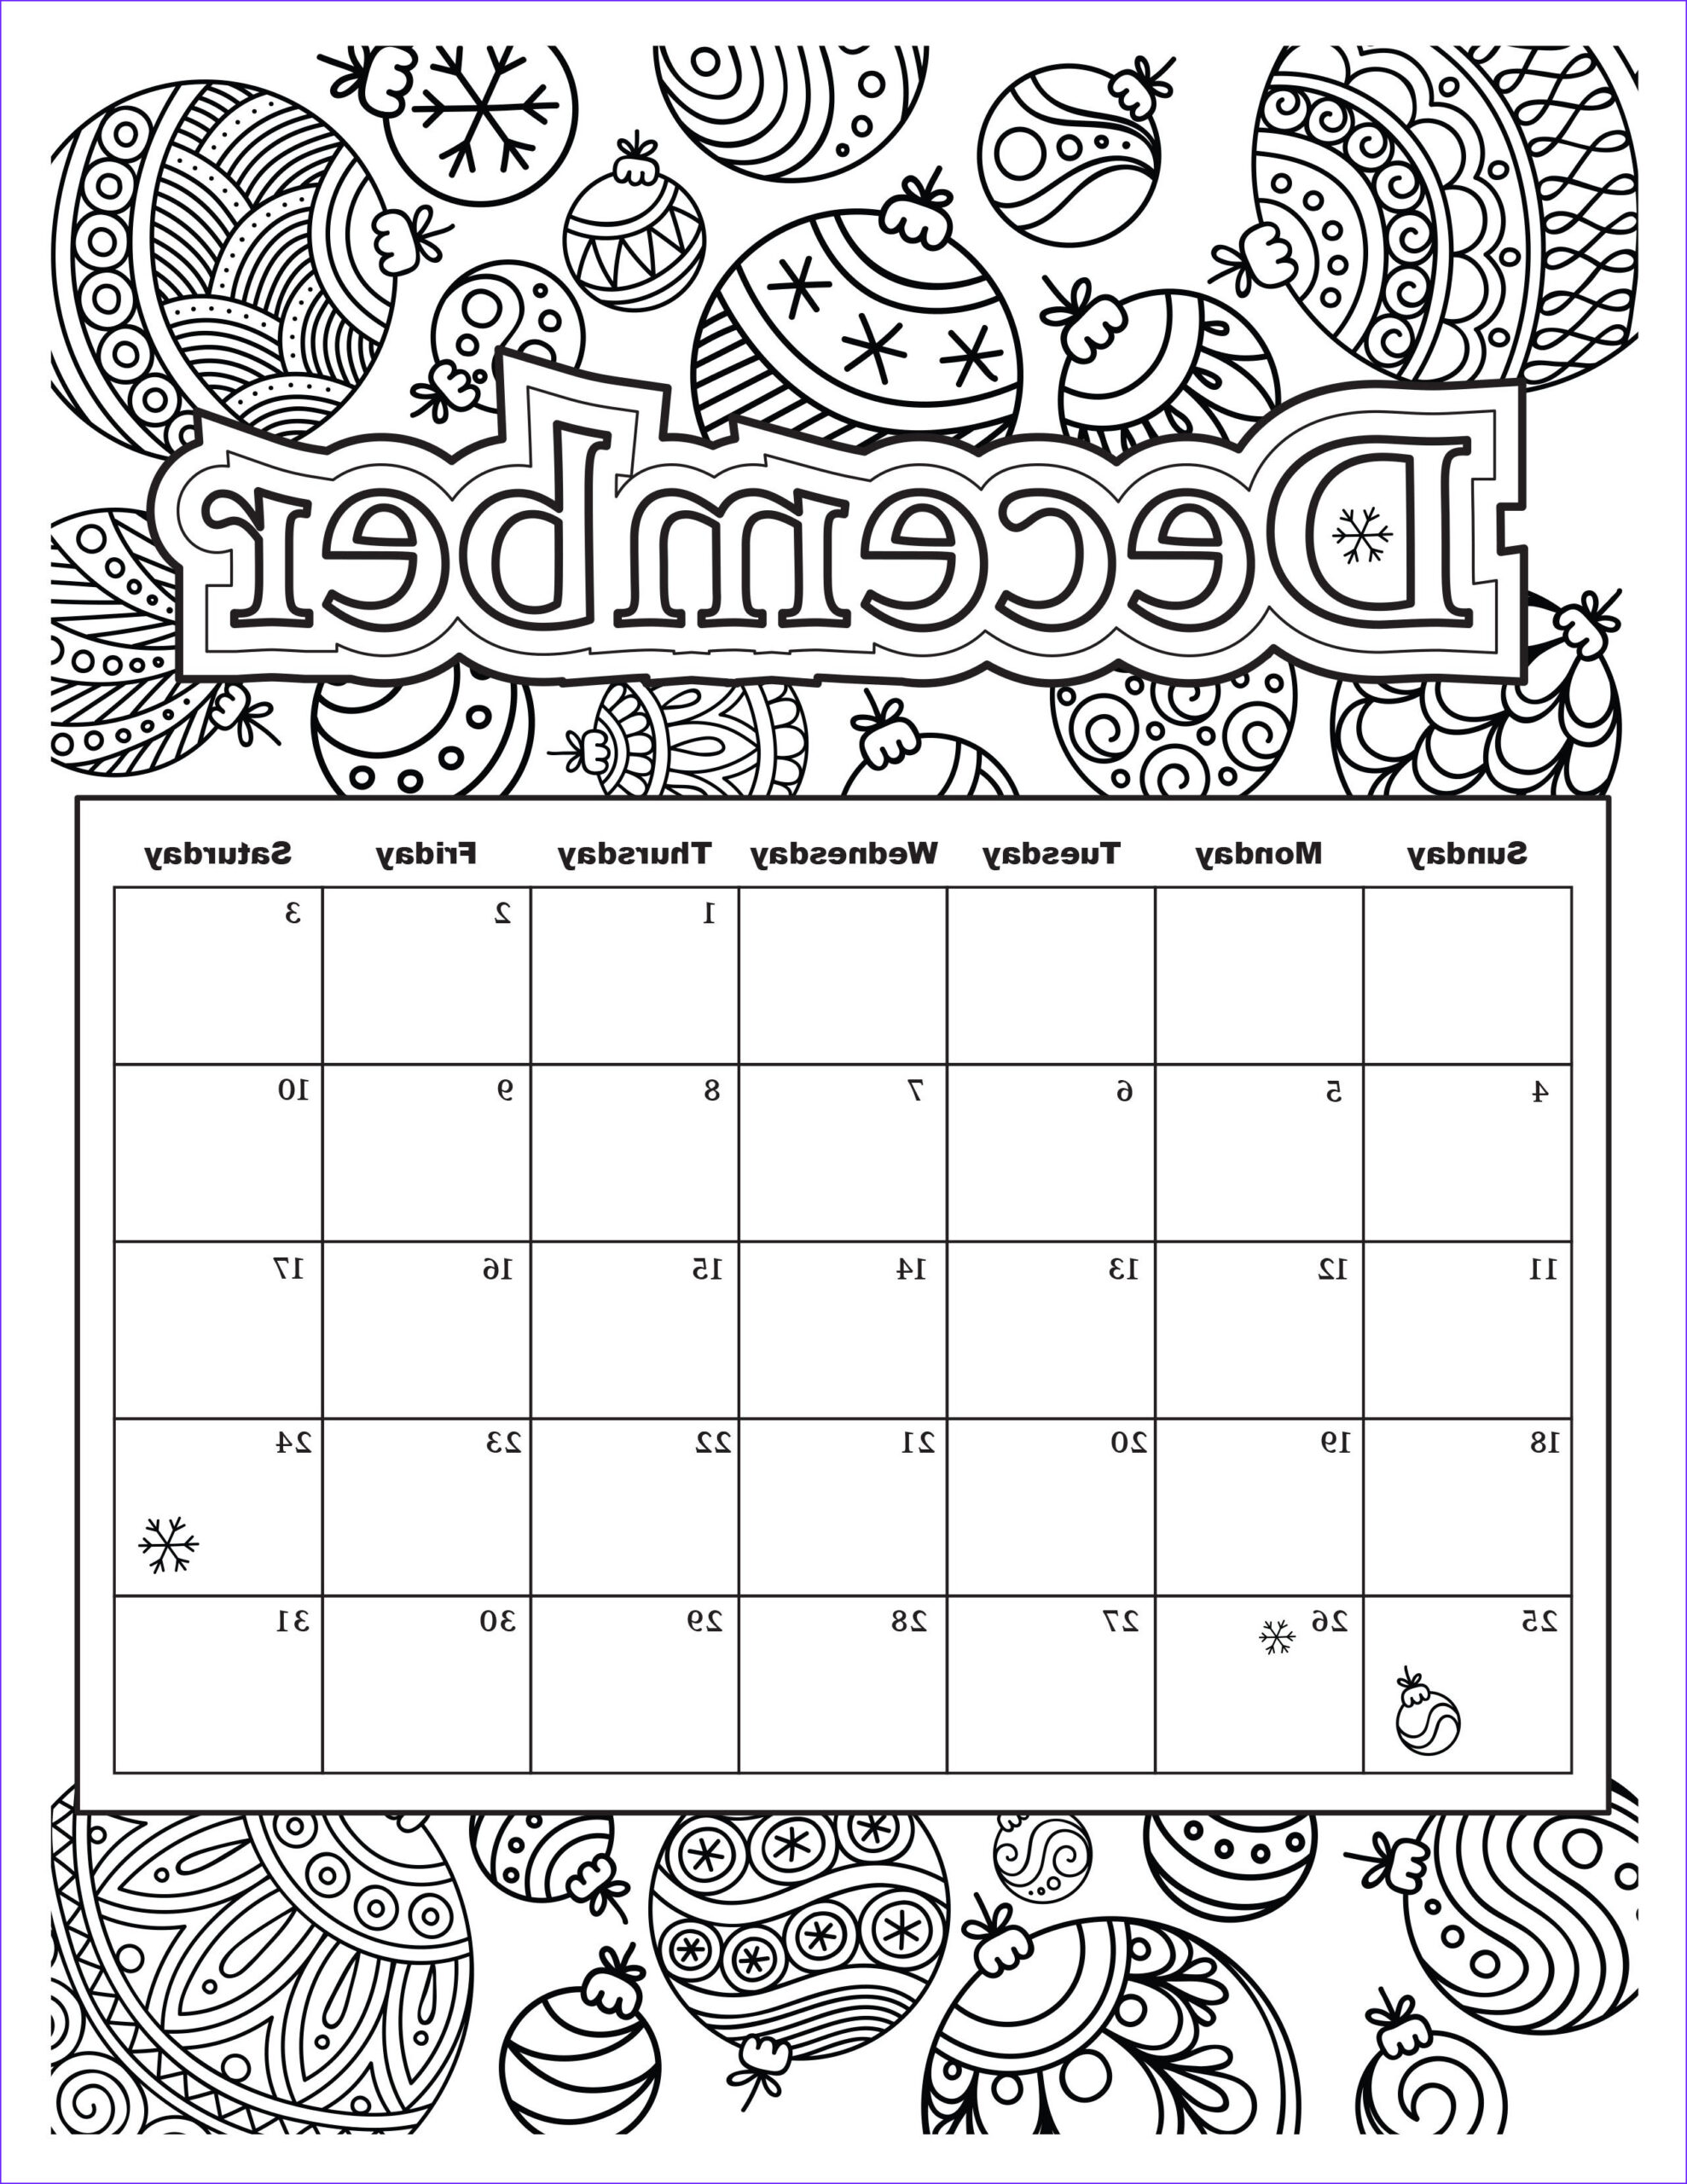 Coloring Calendar 2017 Beautiful Gallery Free Download Coloring Pages From Popular Adult Coloring